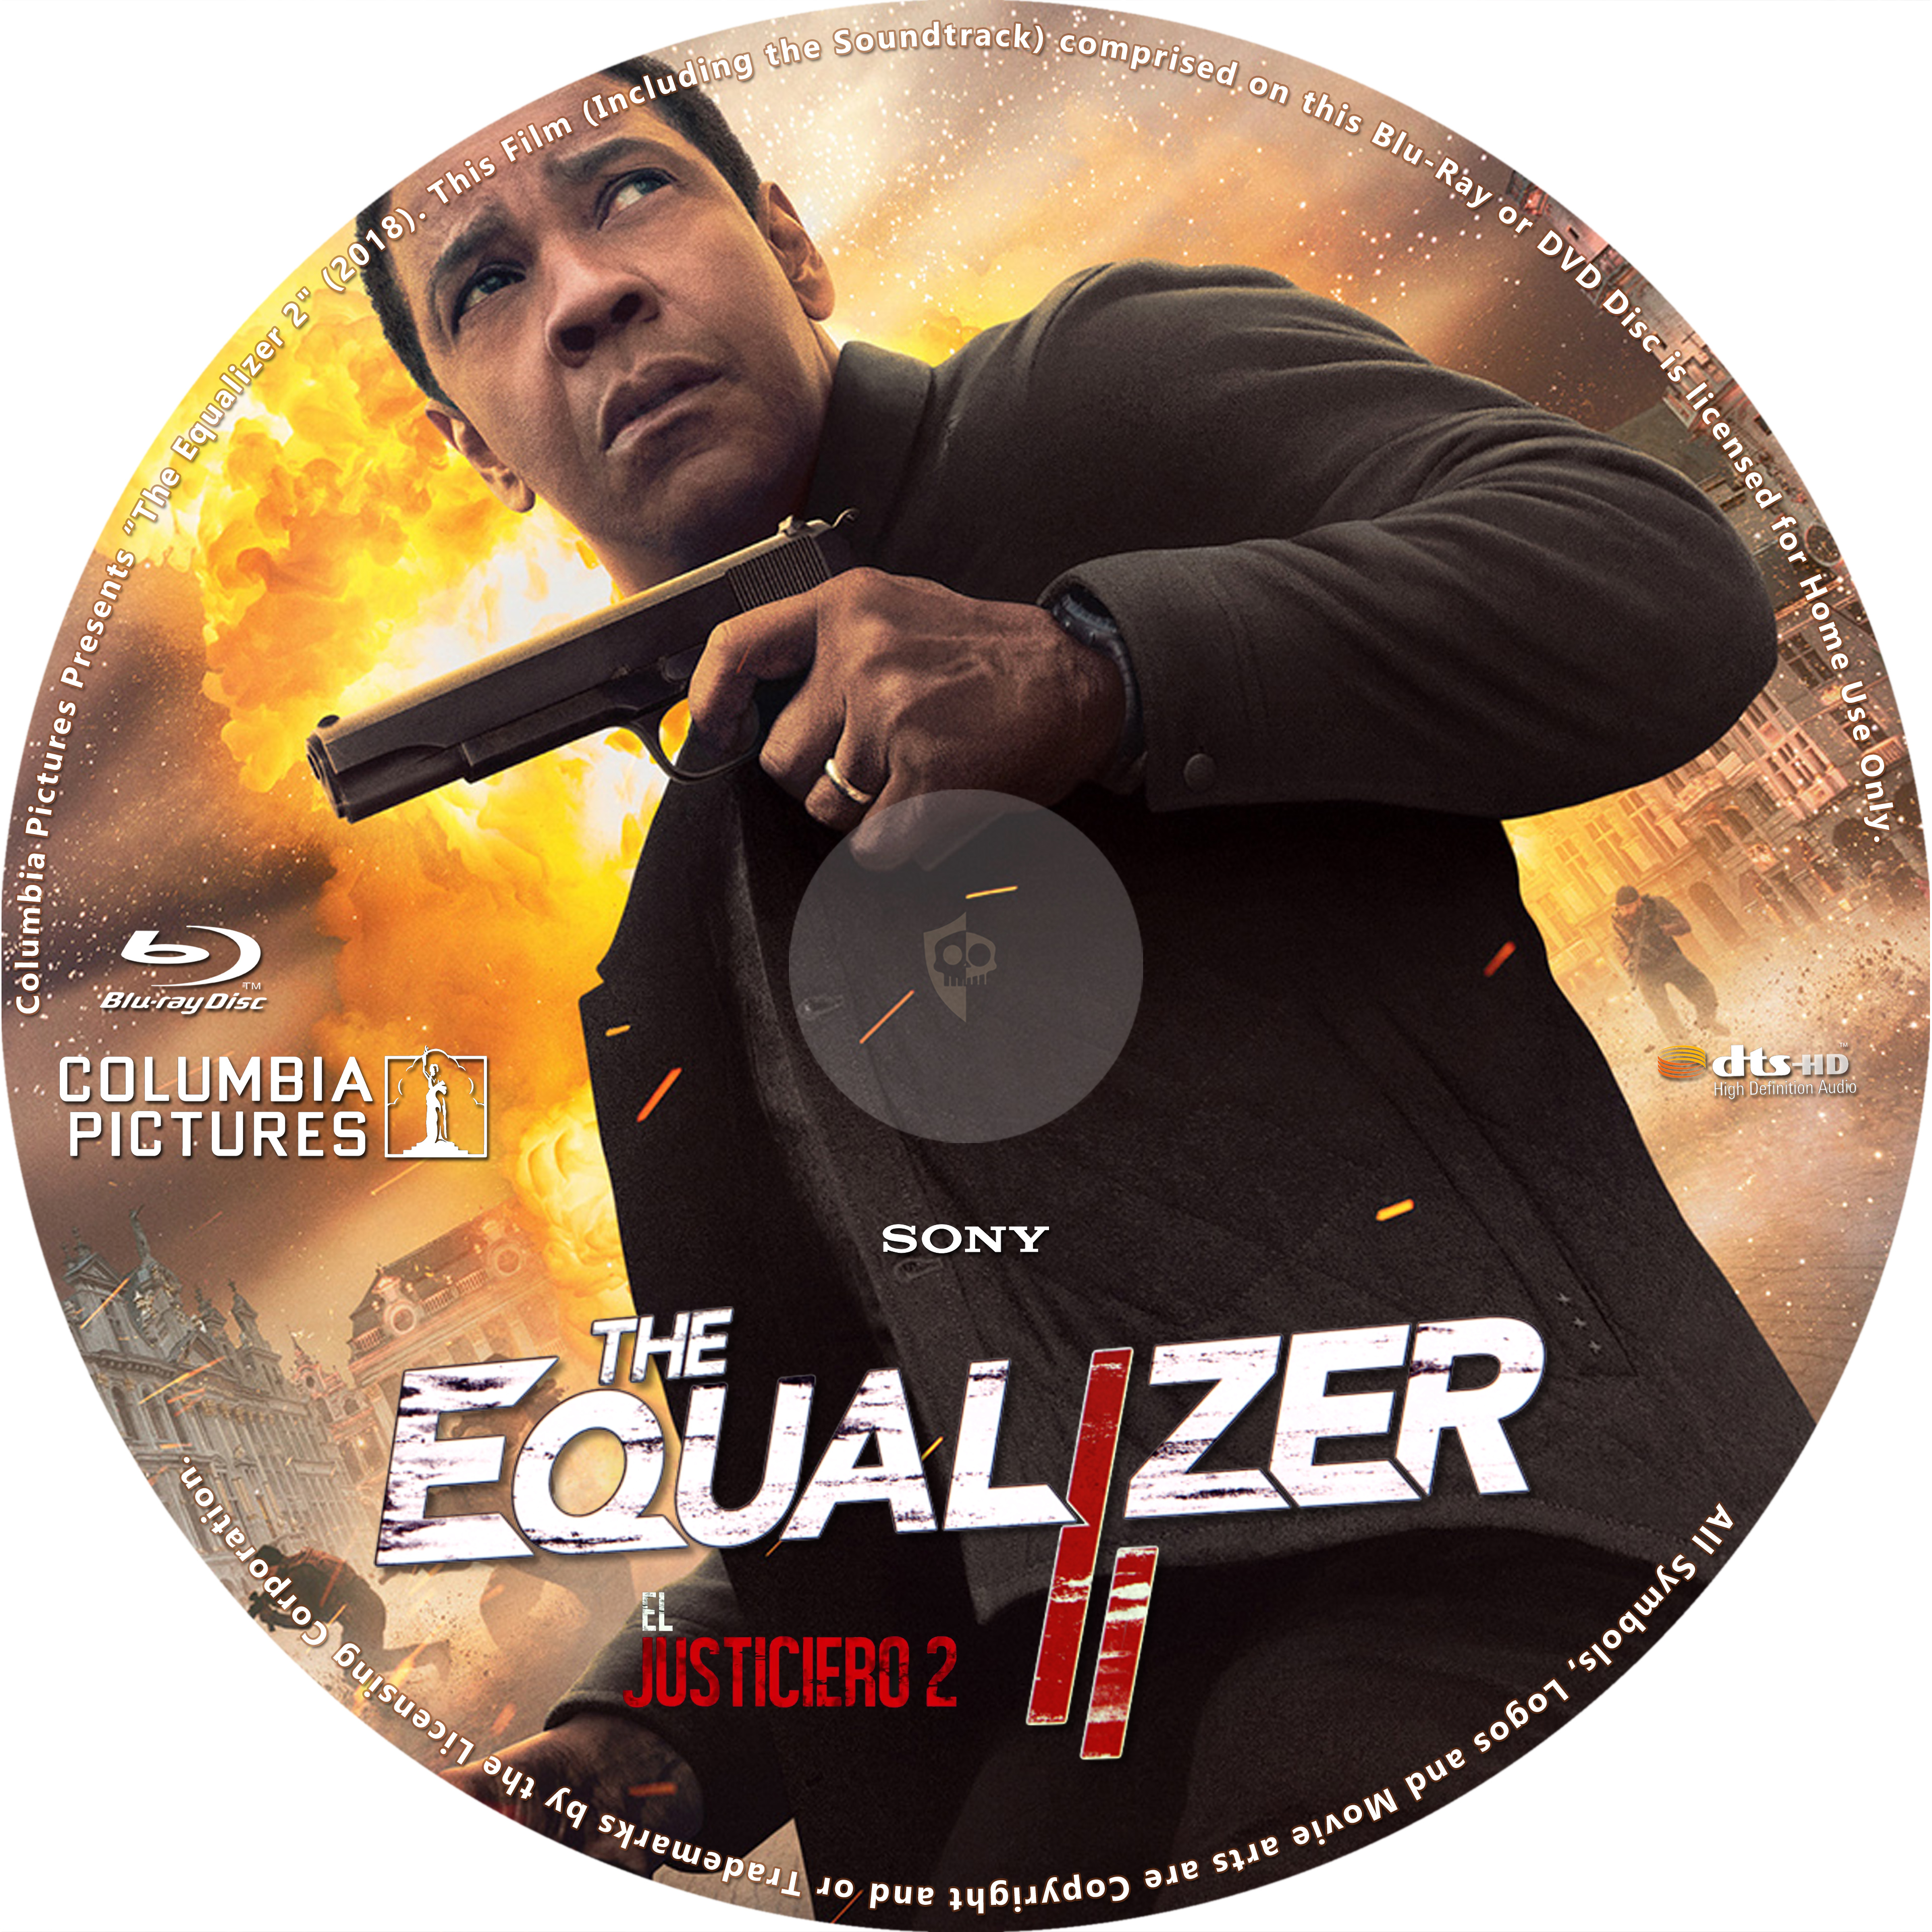 Covers Box Sk The Equalizer 2 2018 High Quality Dvd Blueray Movie